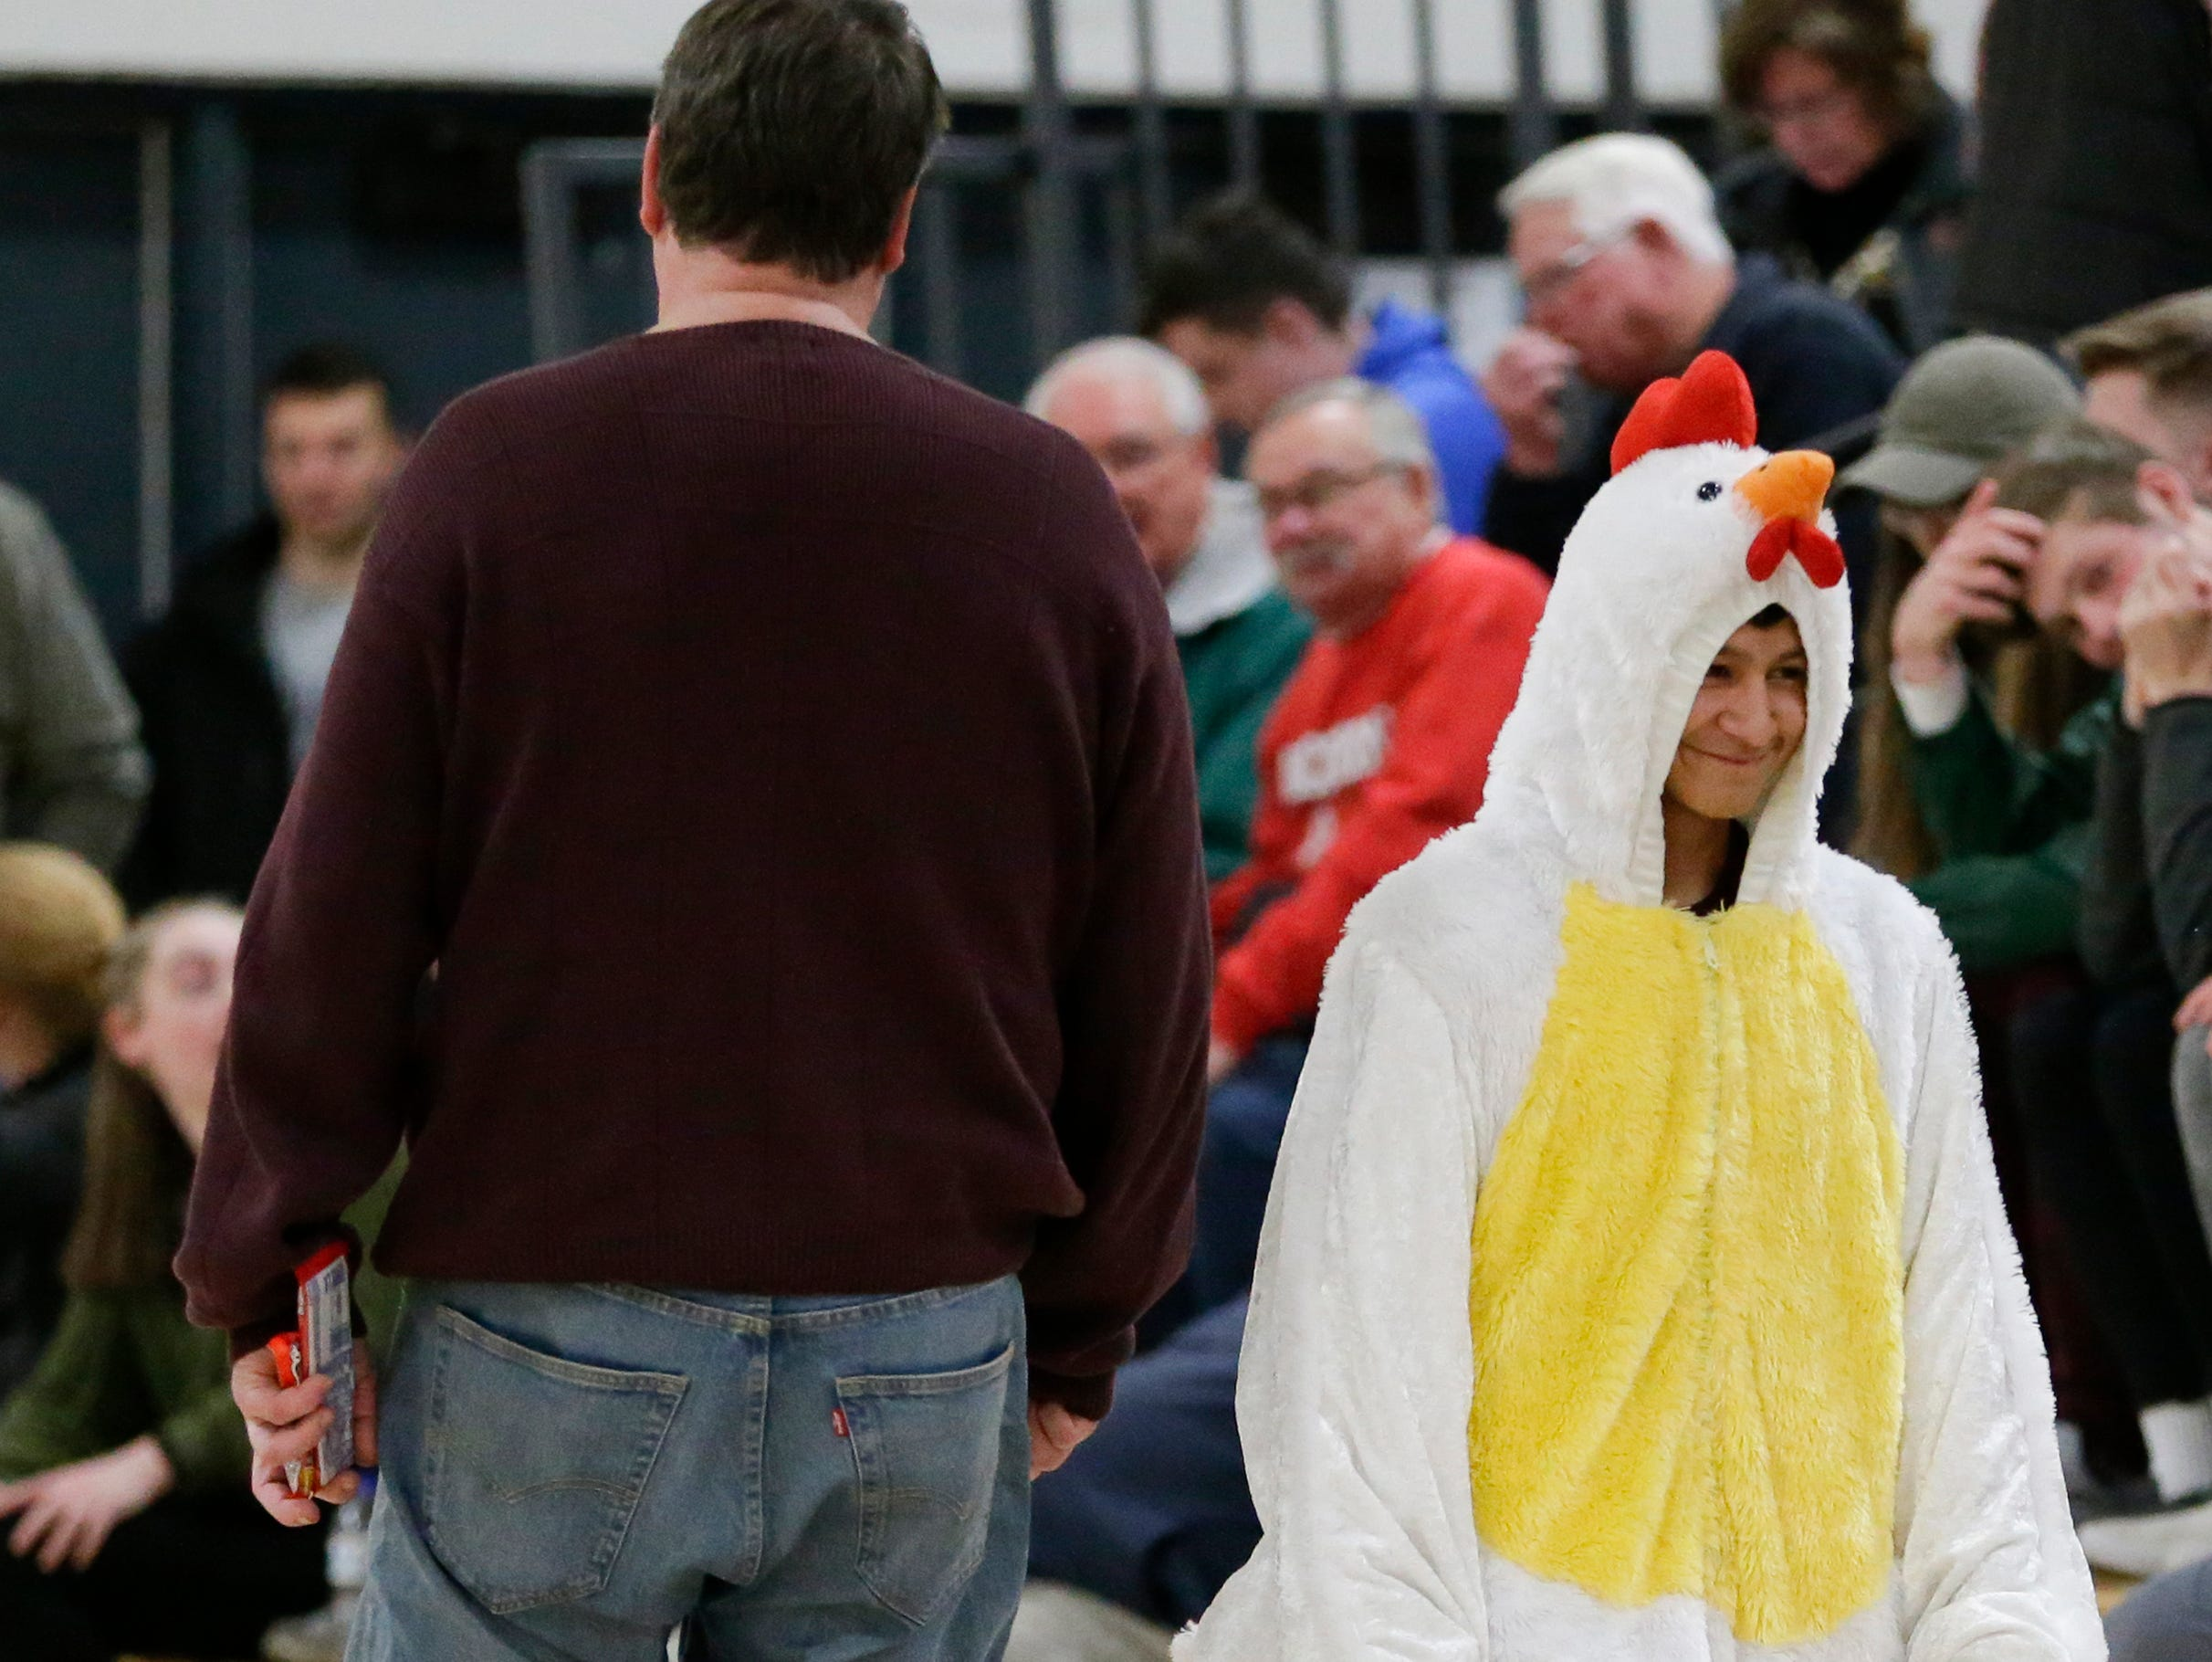 A Roncalli student dressed as a chicken walks to his seat during an EWC matchup against Sheboygan Falls at Roncalli High School Thursday, January 10, 2019, in Manitowoc, Wis. Joshua Clark/USA TODAY NETWORK-Wisconsin